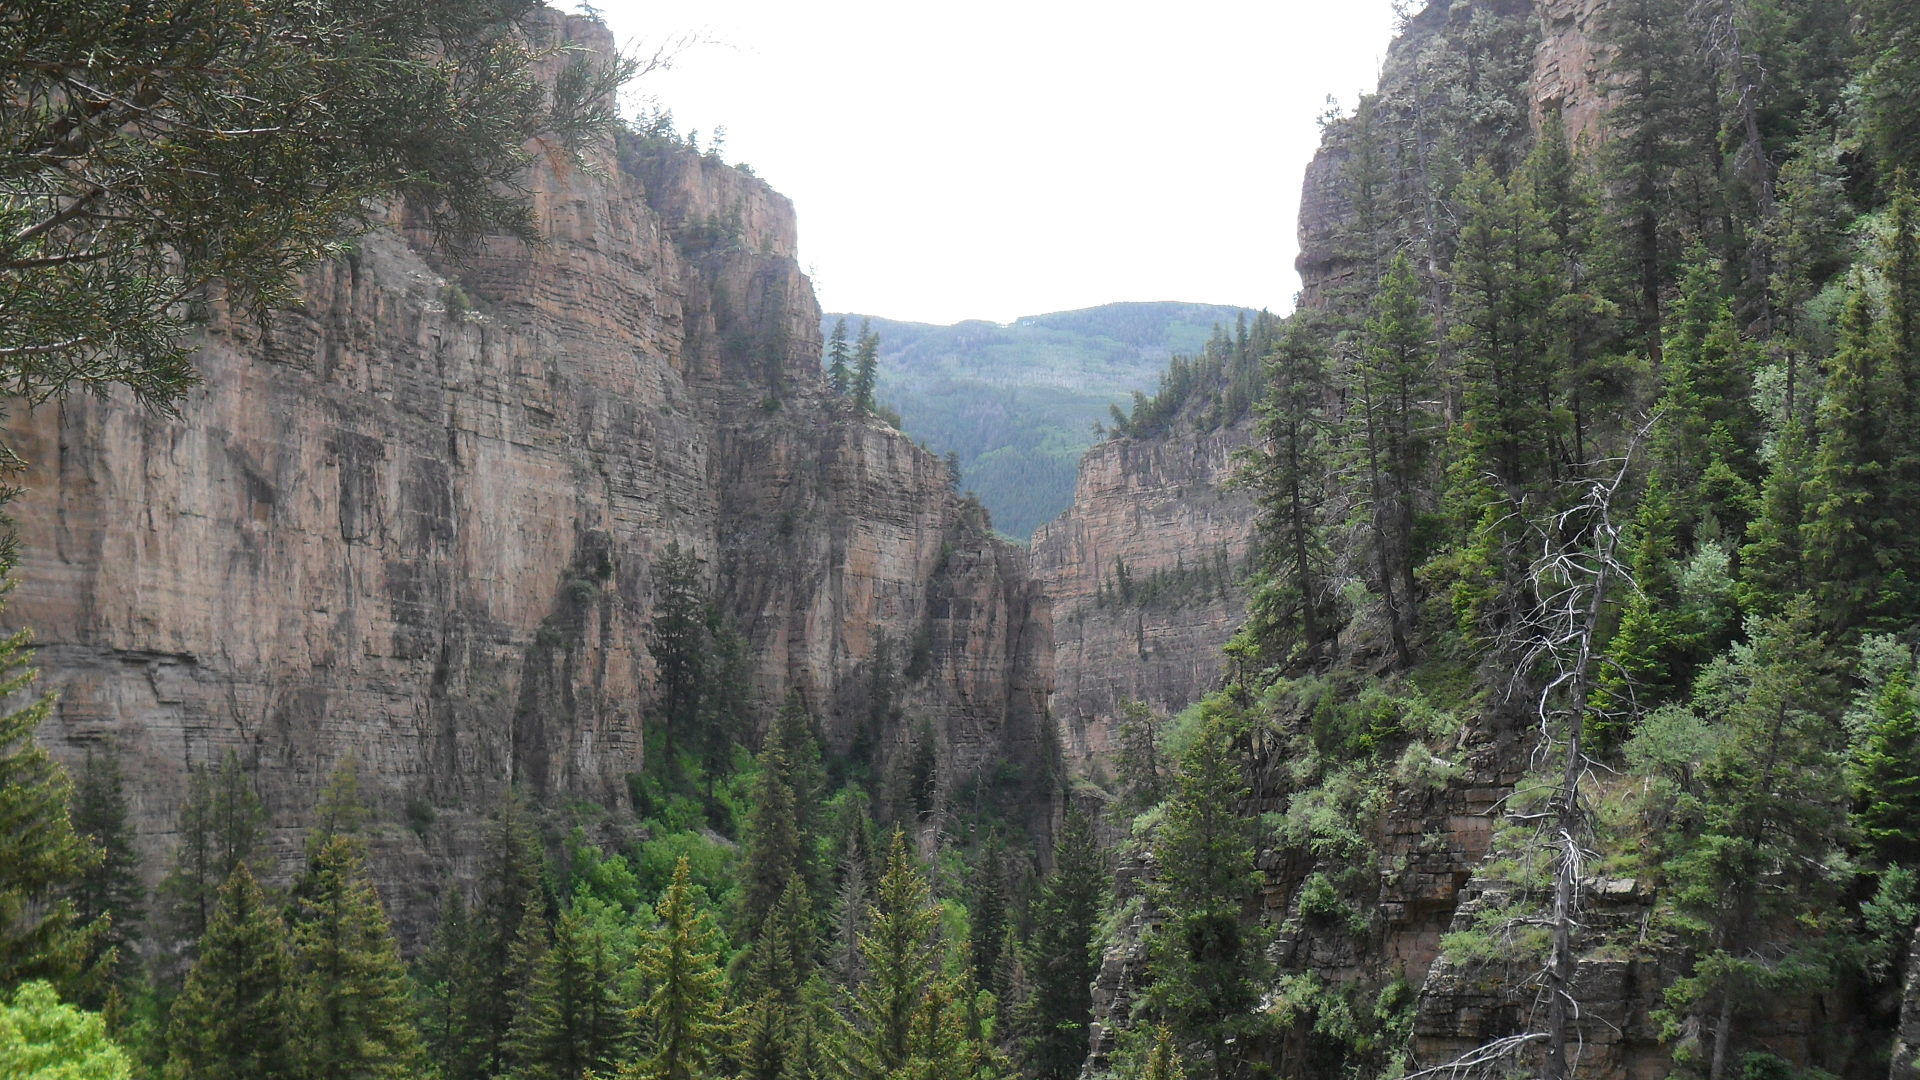 Glenwood Canyon  Wikipedia